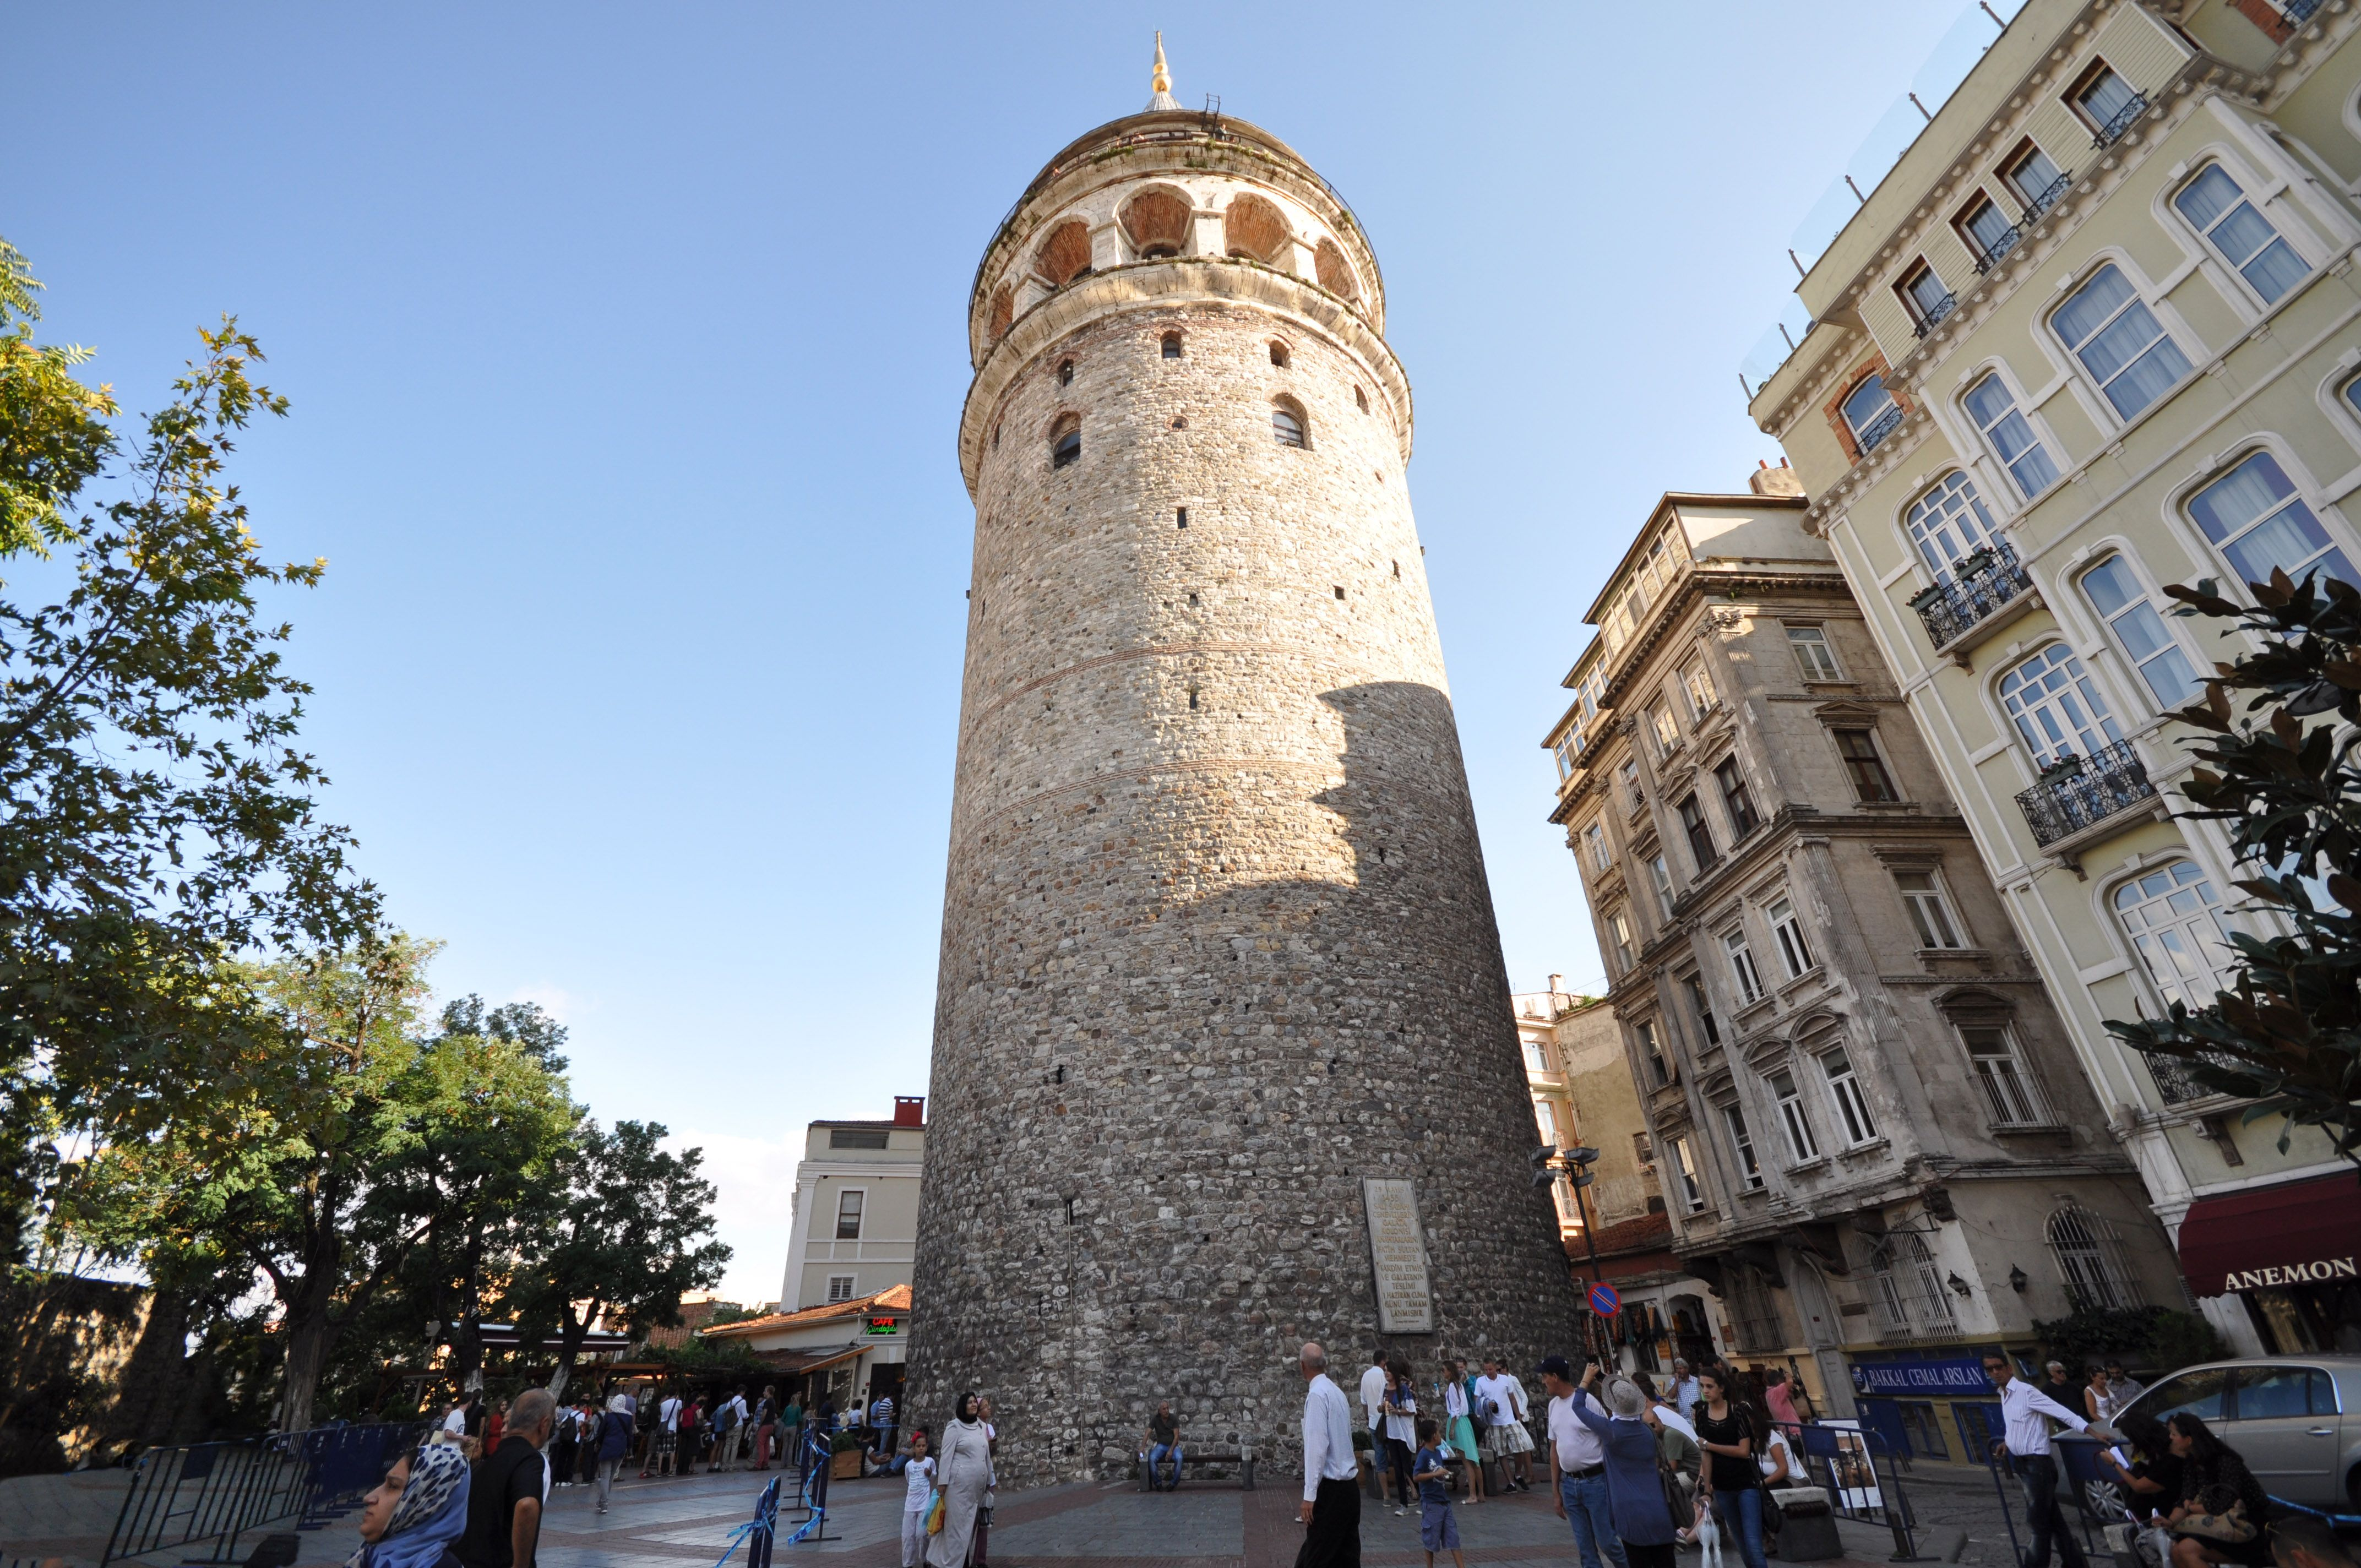 istanbul galata tower daily istanbul city tour with http www travelforturkey com kule istanbul imparator